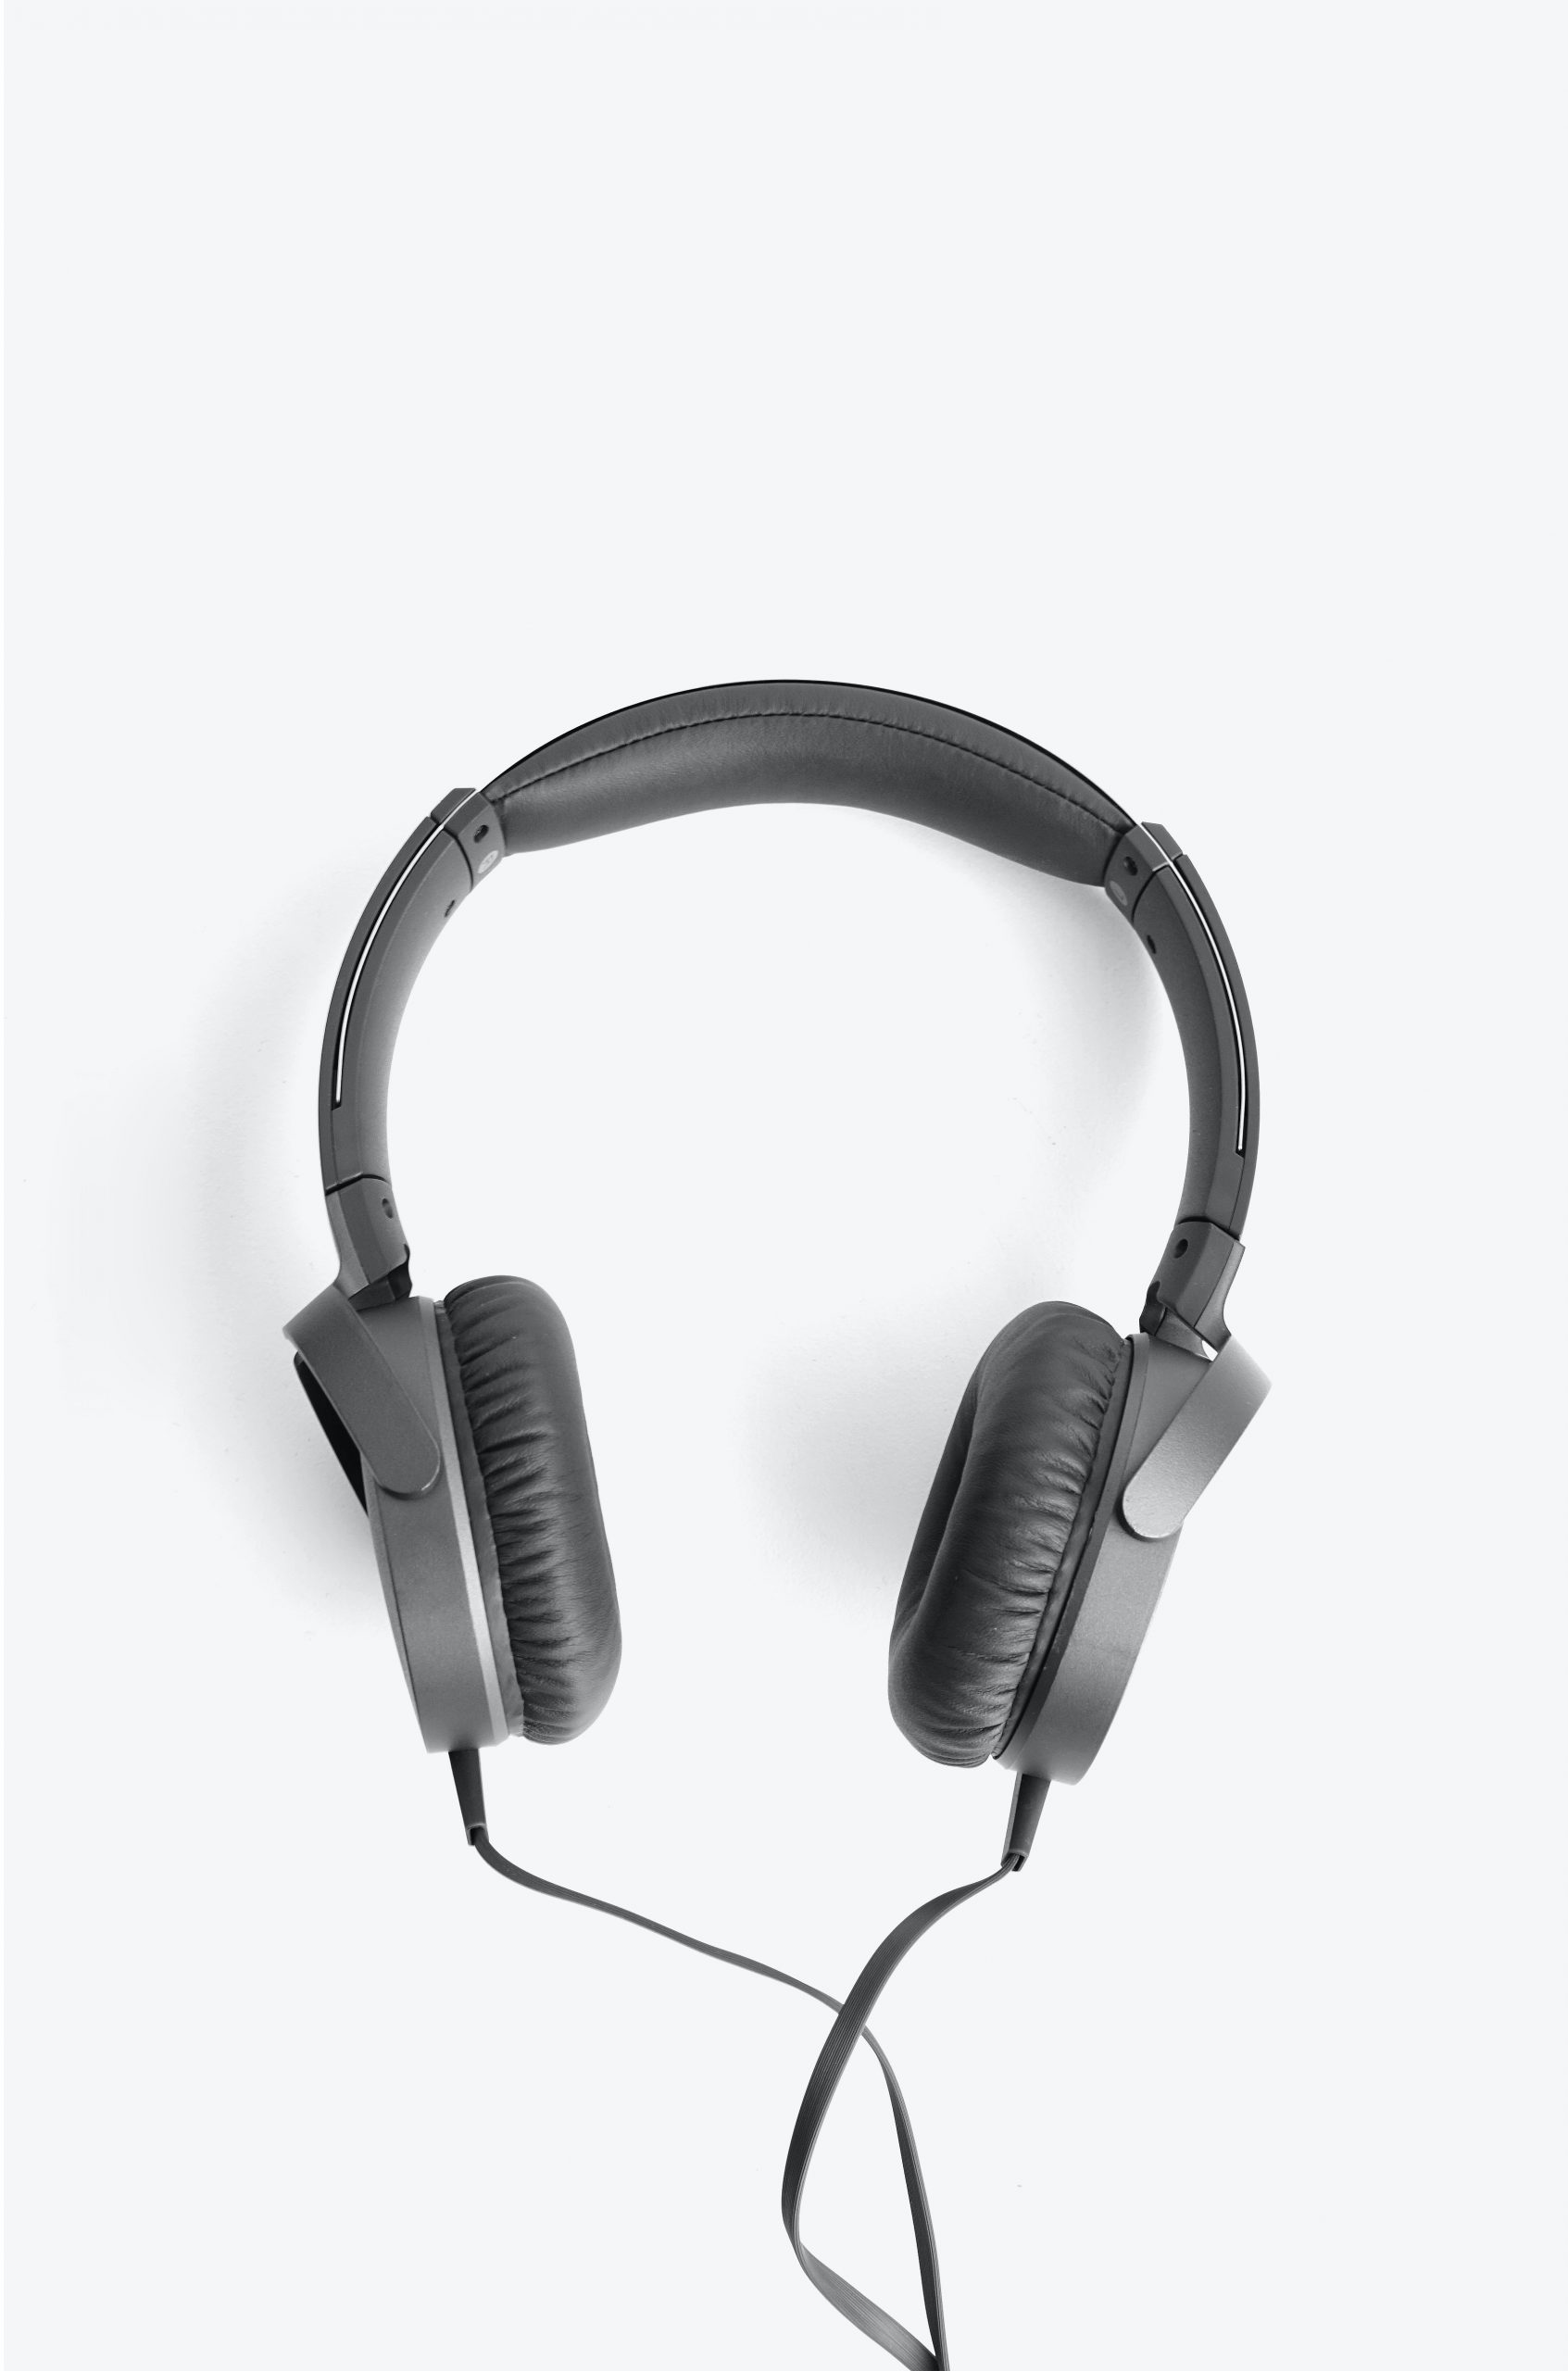 Podcast Headset - Essential Gear for Podcasts